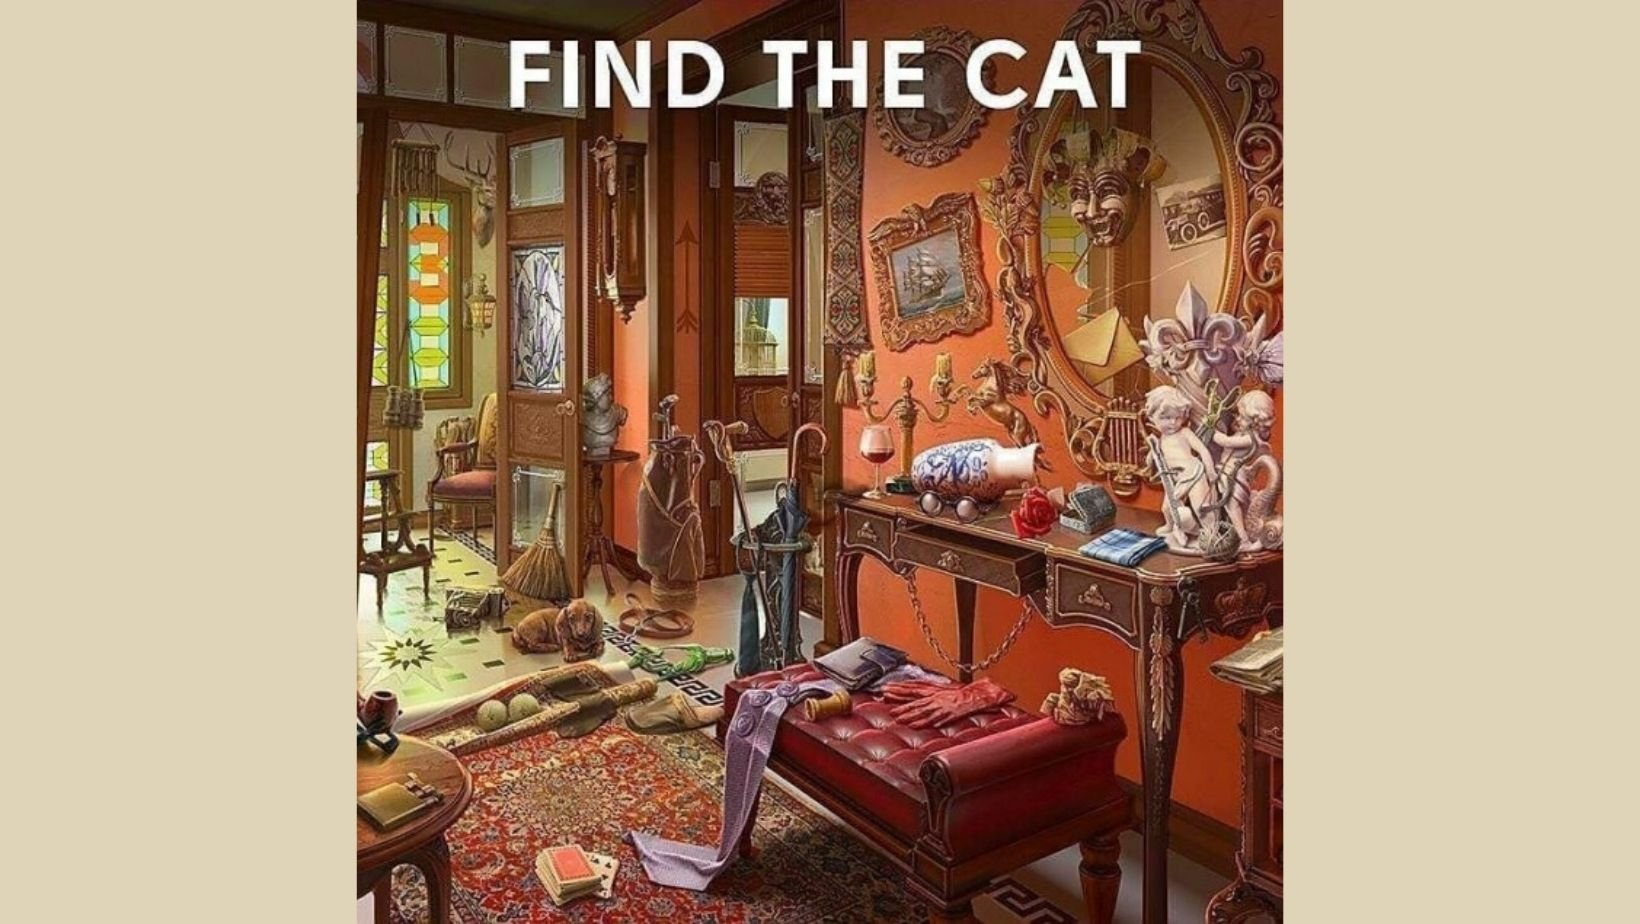 small joys thumbnail 21.jpg?resize=1200,630 - There Is A Sneaky Cat Hiding In This Photo, Can You Find It?